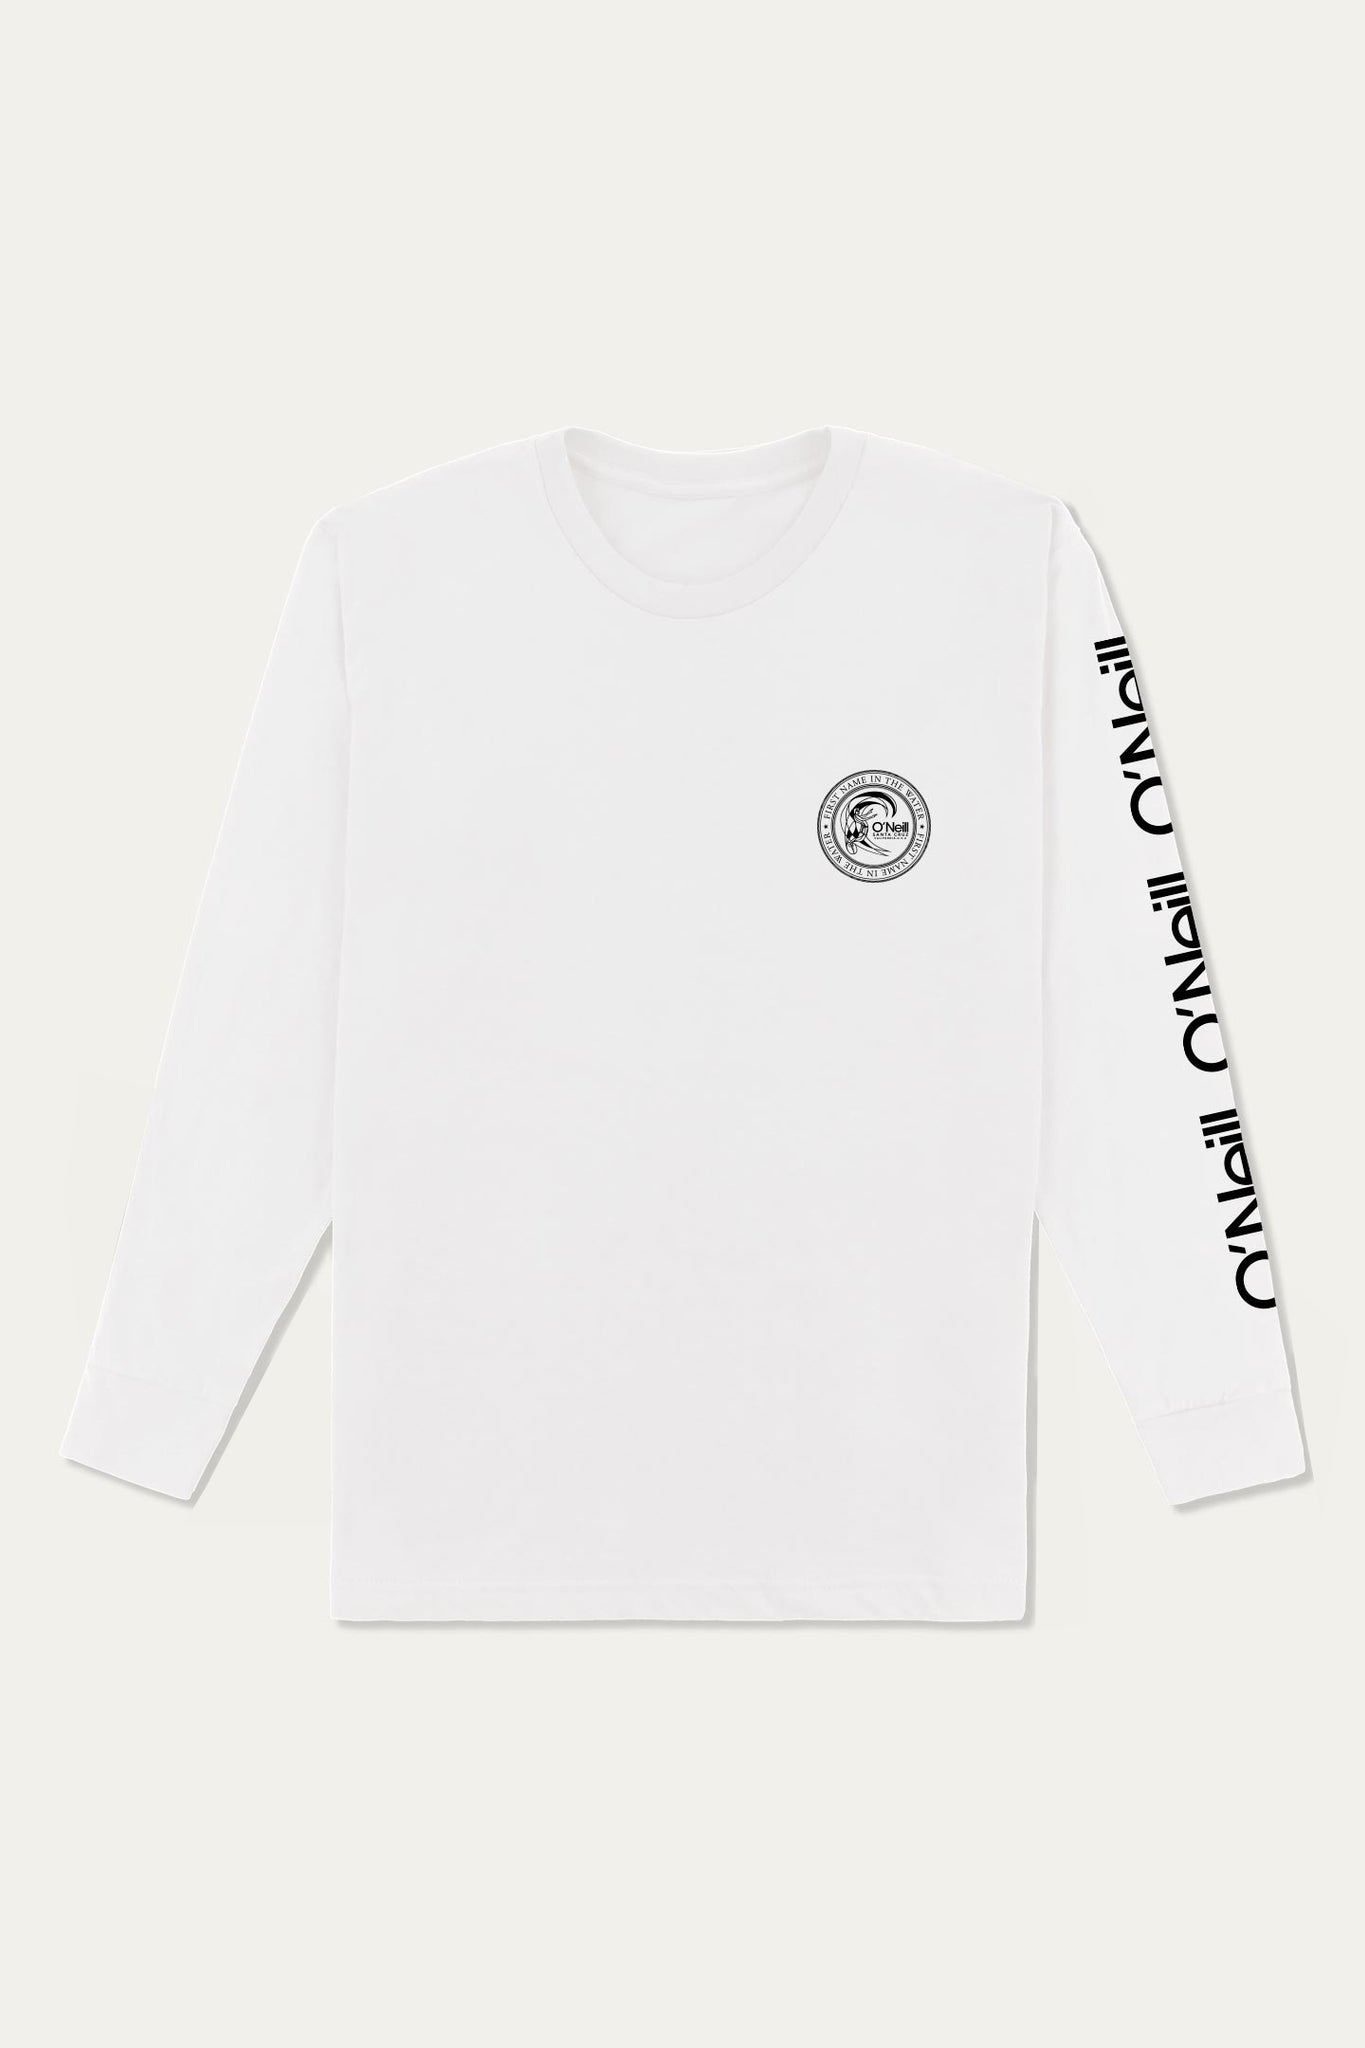 Surfer Seal Long Sleeve Tee | O'Neill Clothing USA